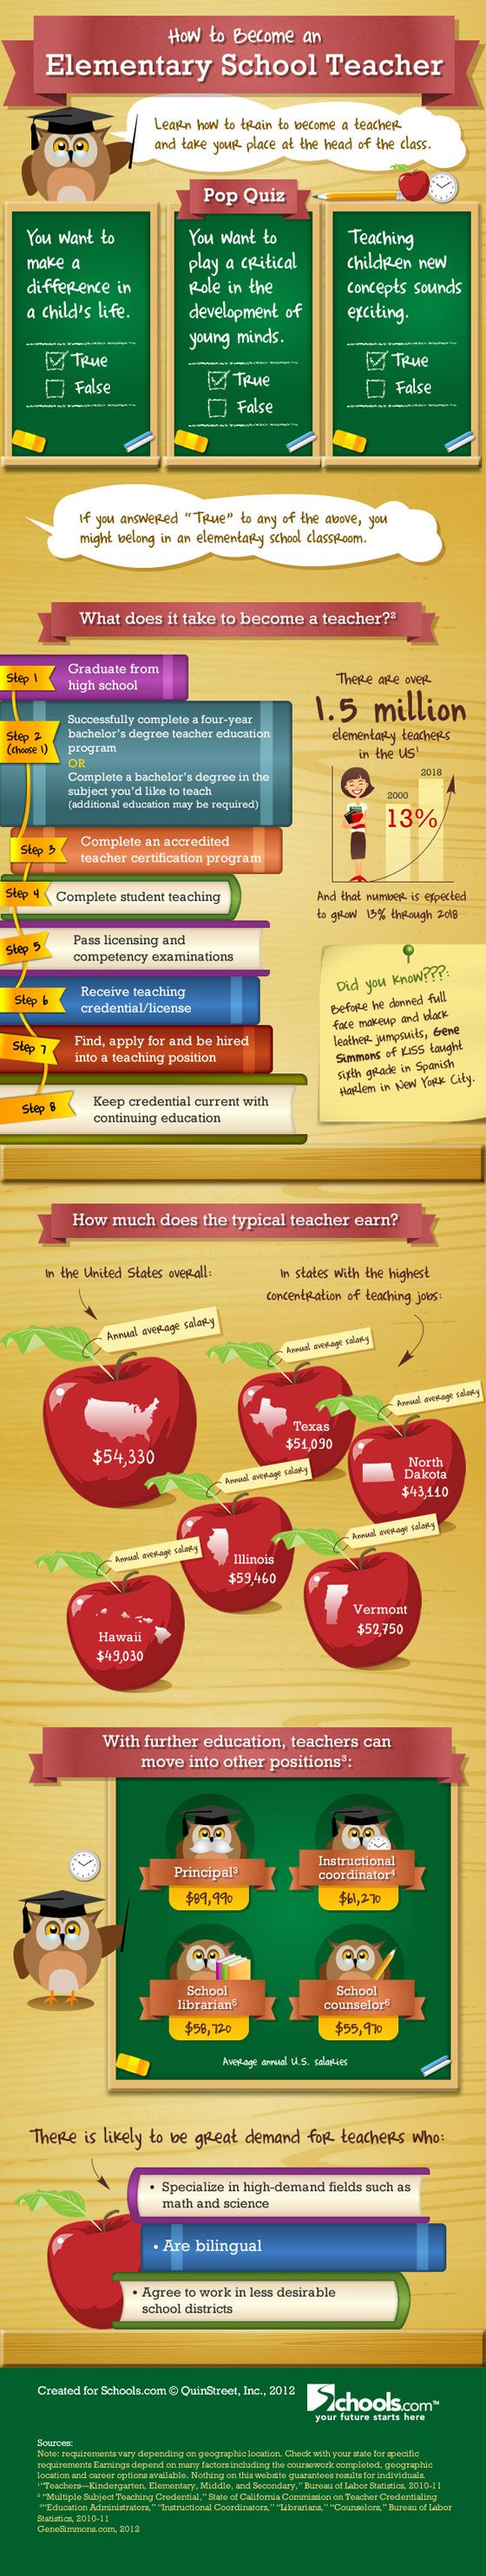 How To An Elementary School Teacher [Infographic